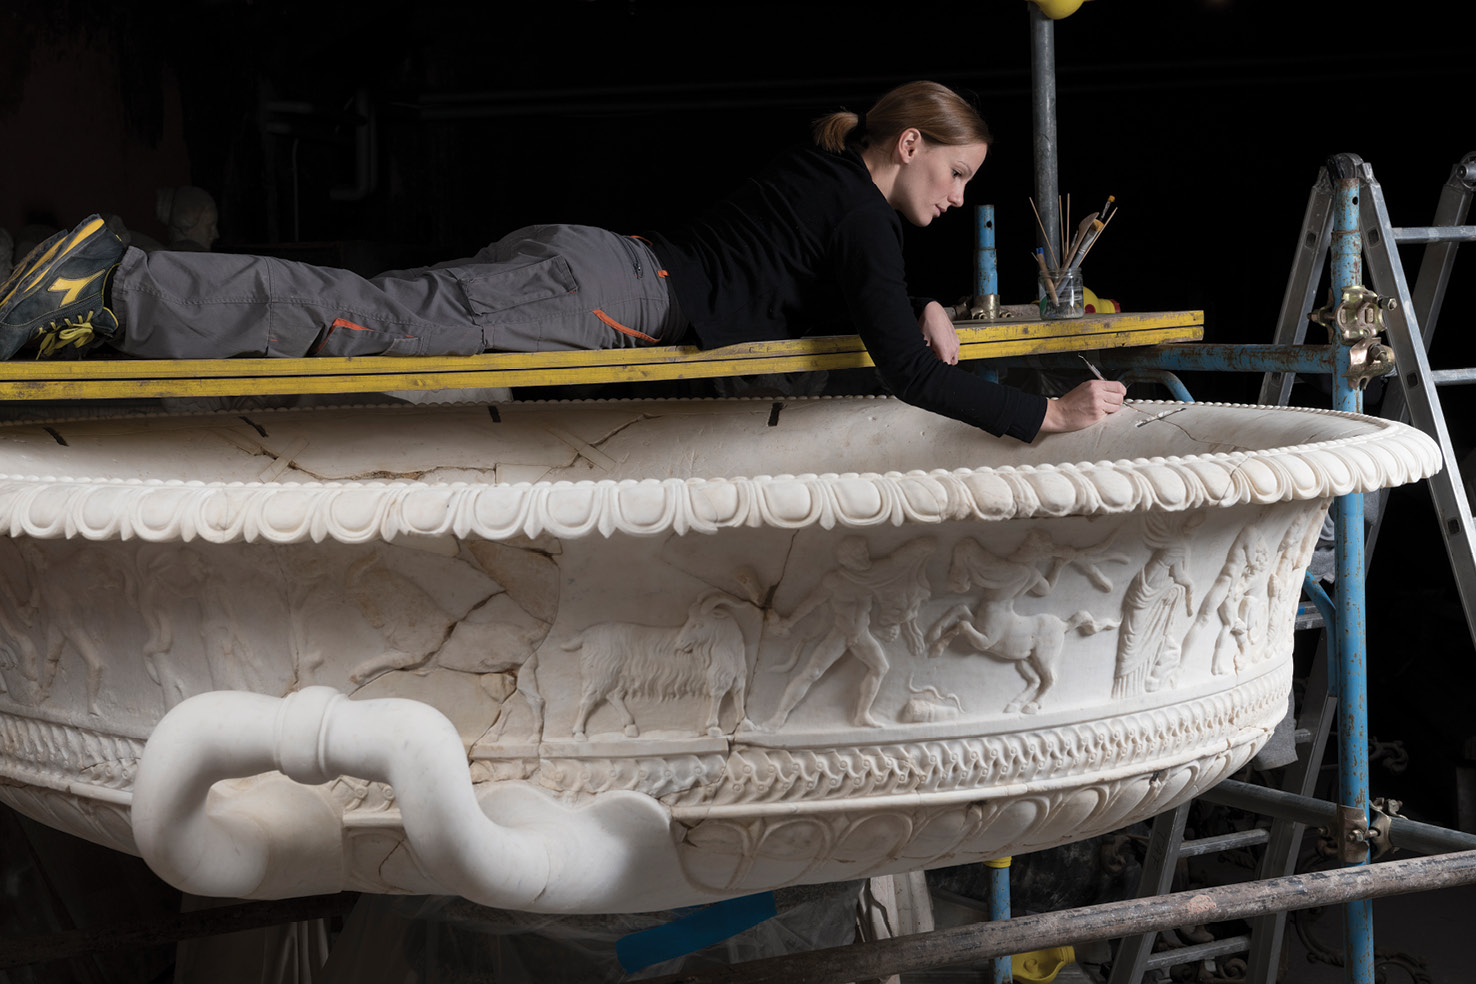 LEFT Restoration being undertaken by Elena Cagnoni on a huge marble vase, dating to the 1st century BC. It was discovered along the via Appia in 1762, and shows the 12 tasks of Hercules.